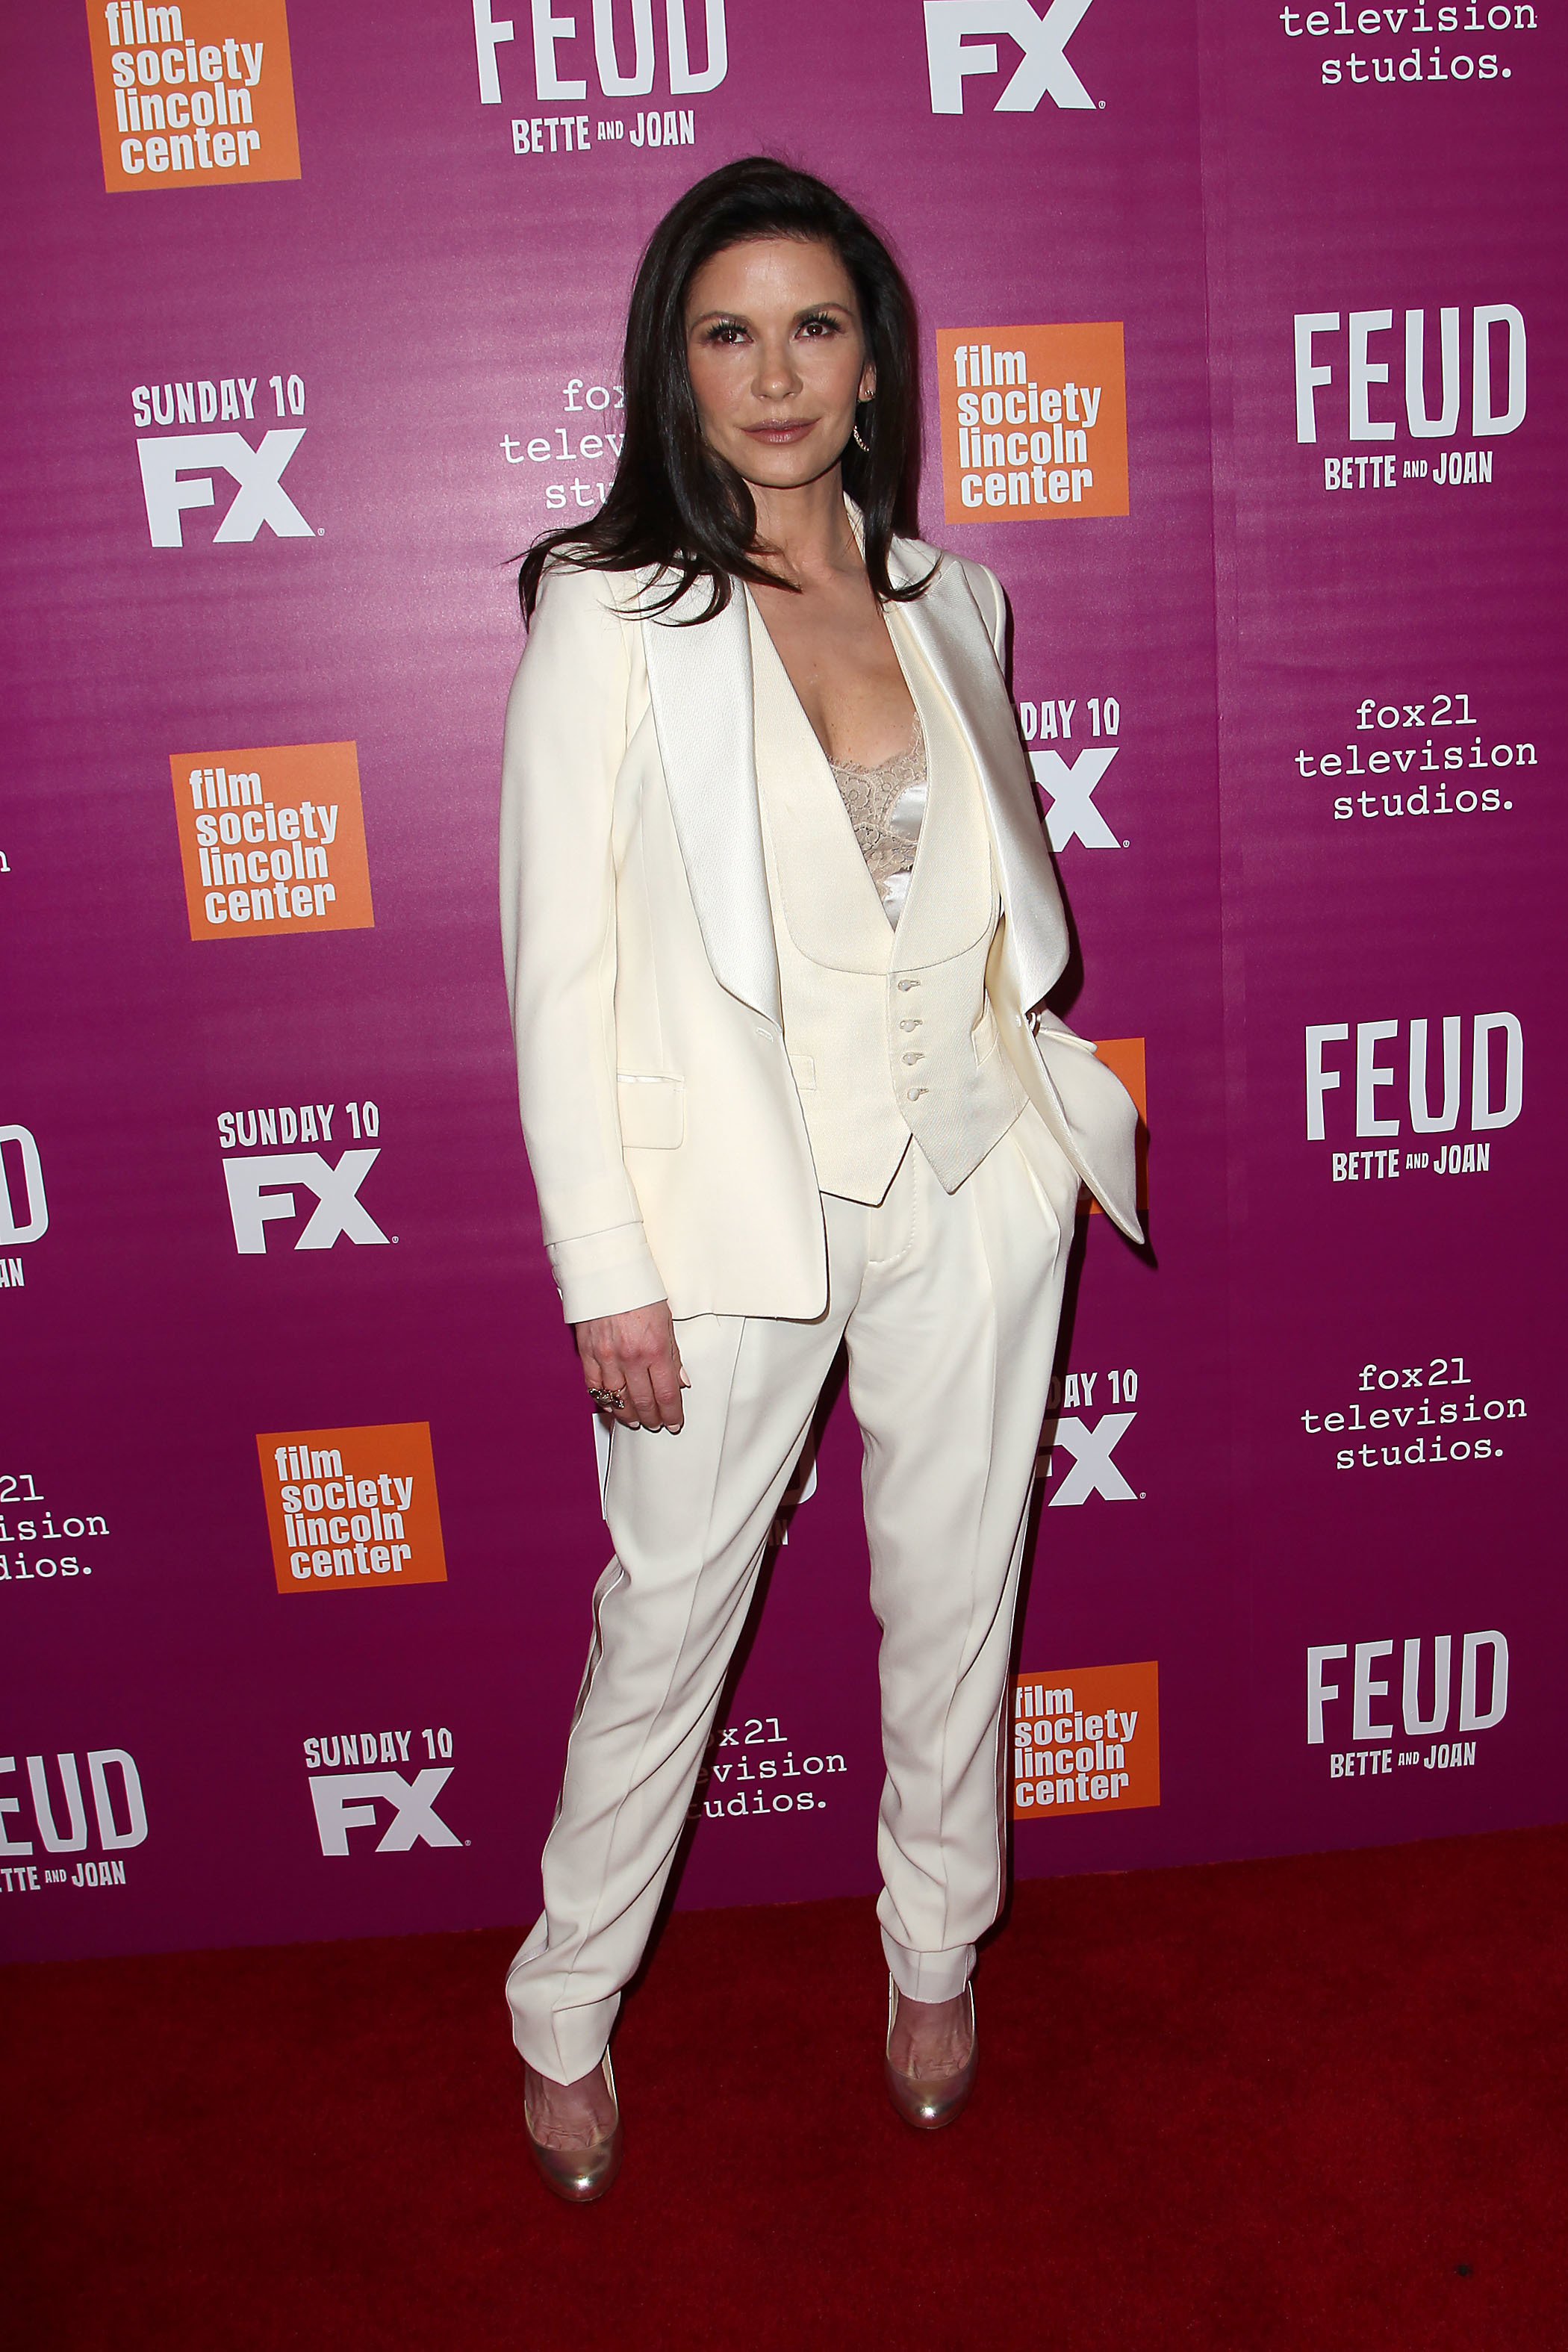 """Catherine Zeta Jones attends the """"Feud: Bette and Joan"""" red carpet event in New York on April 18, 2017."""